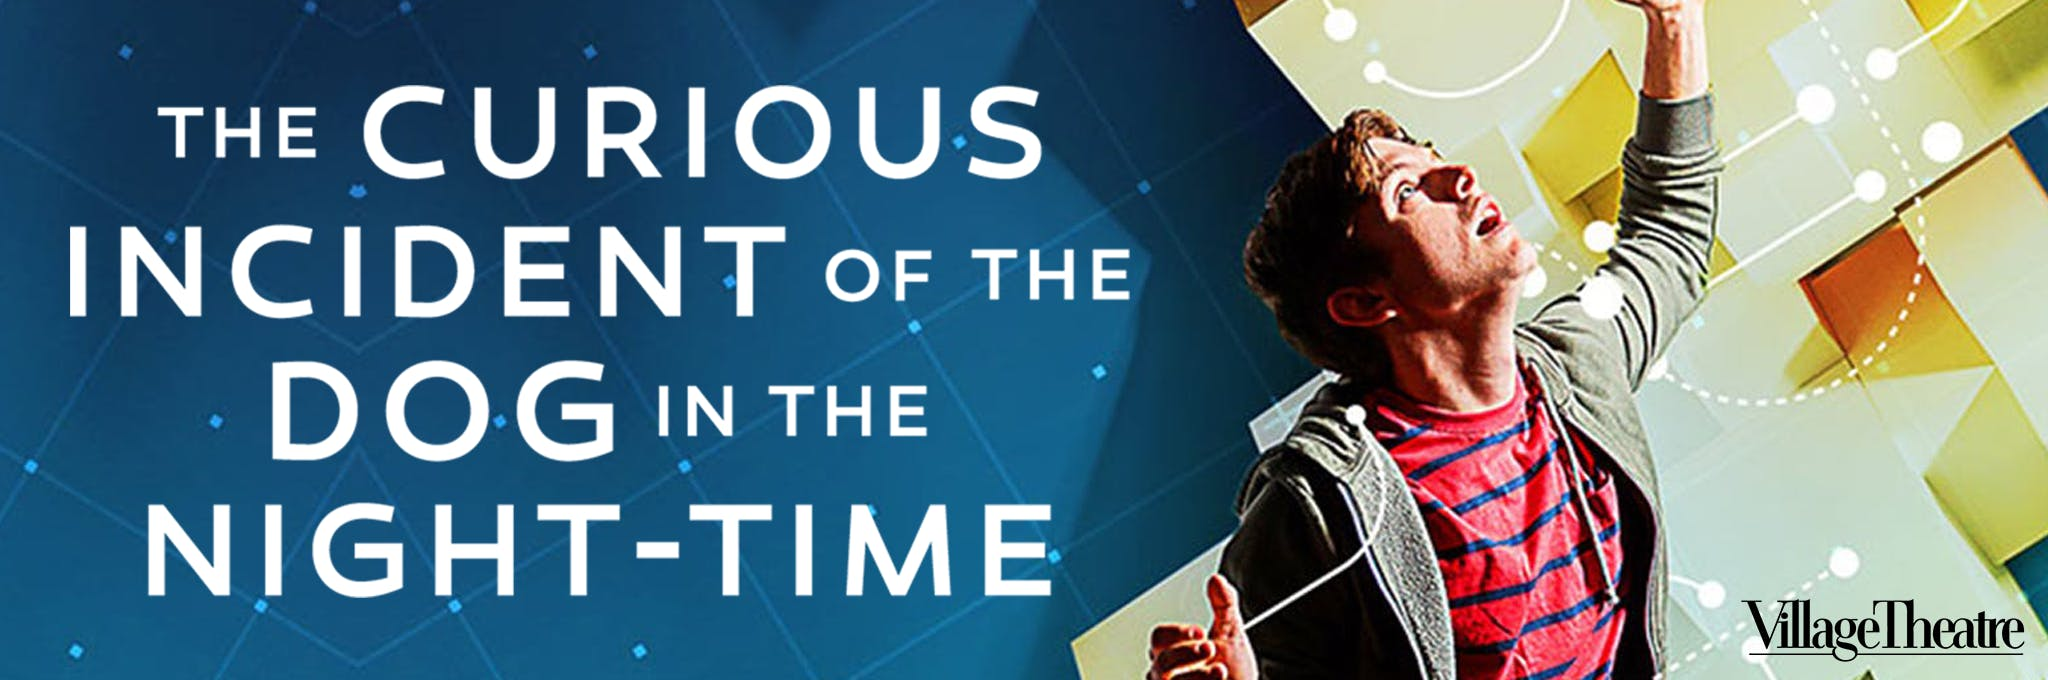 The Curious Incident of the Dog in the Night-Time - Issaquah Logo